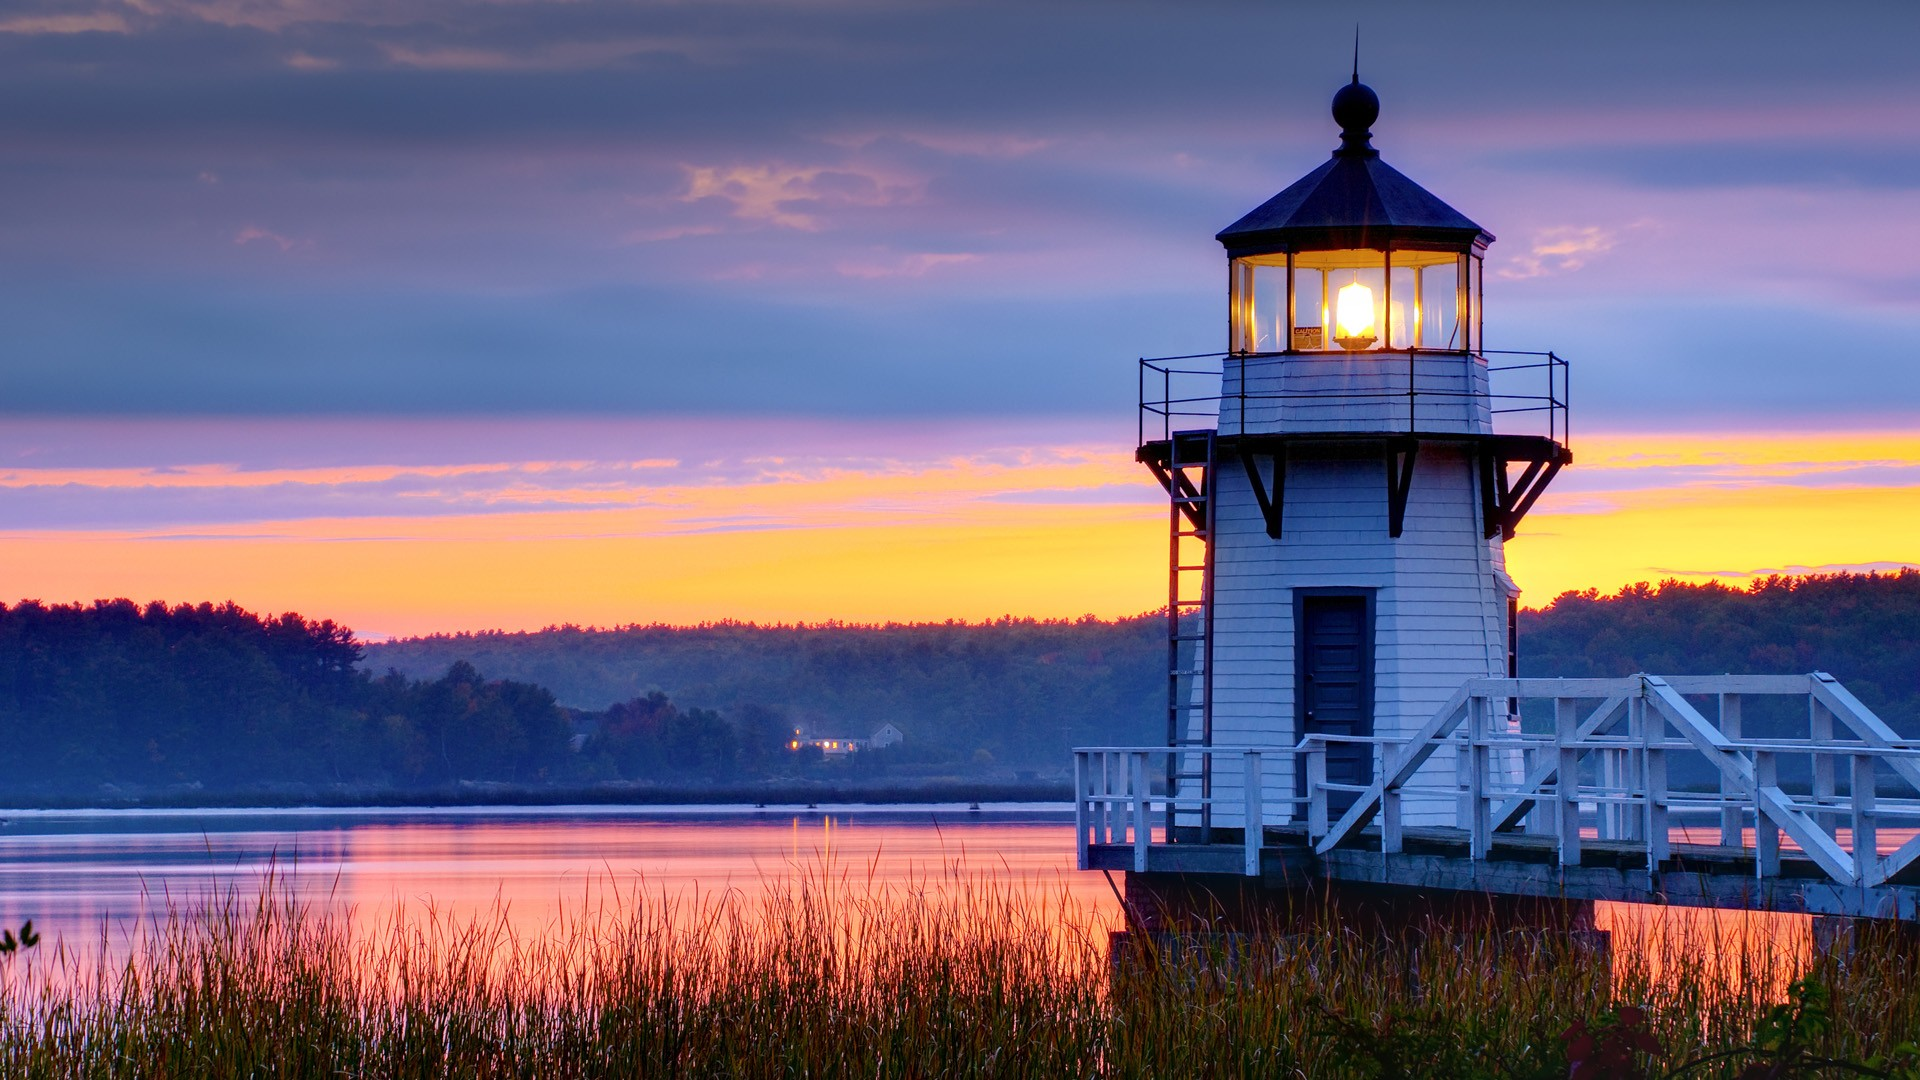 Lighthouse hd wallpaper wallpaper high definition high for Quality wallpaper for home